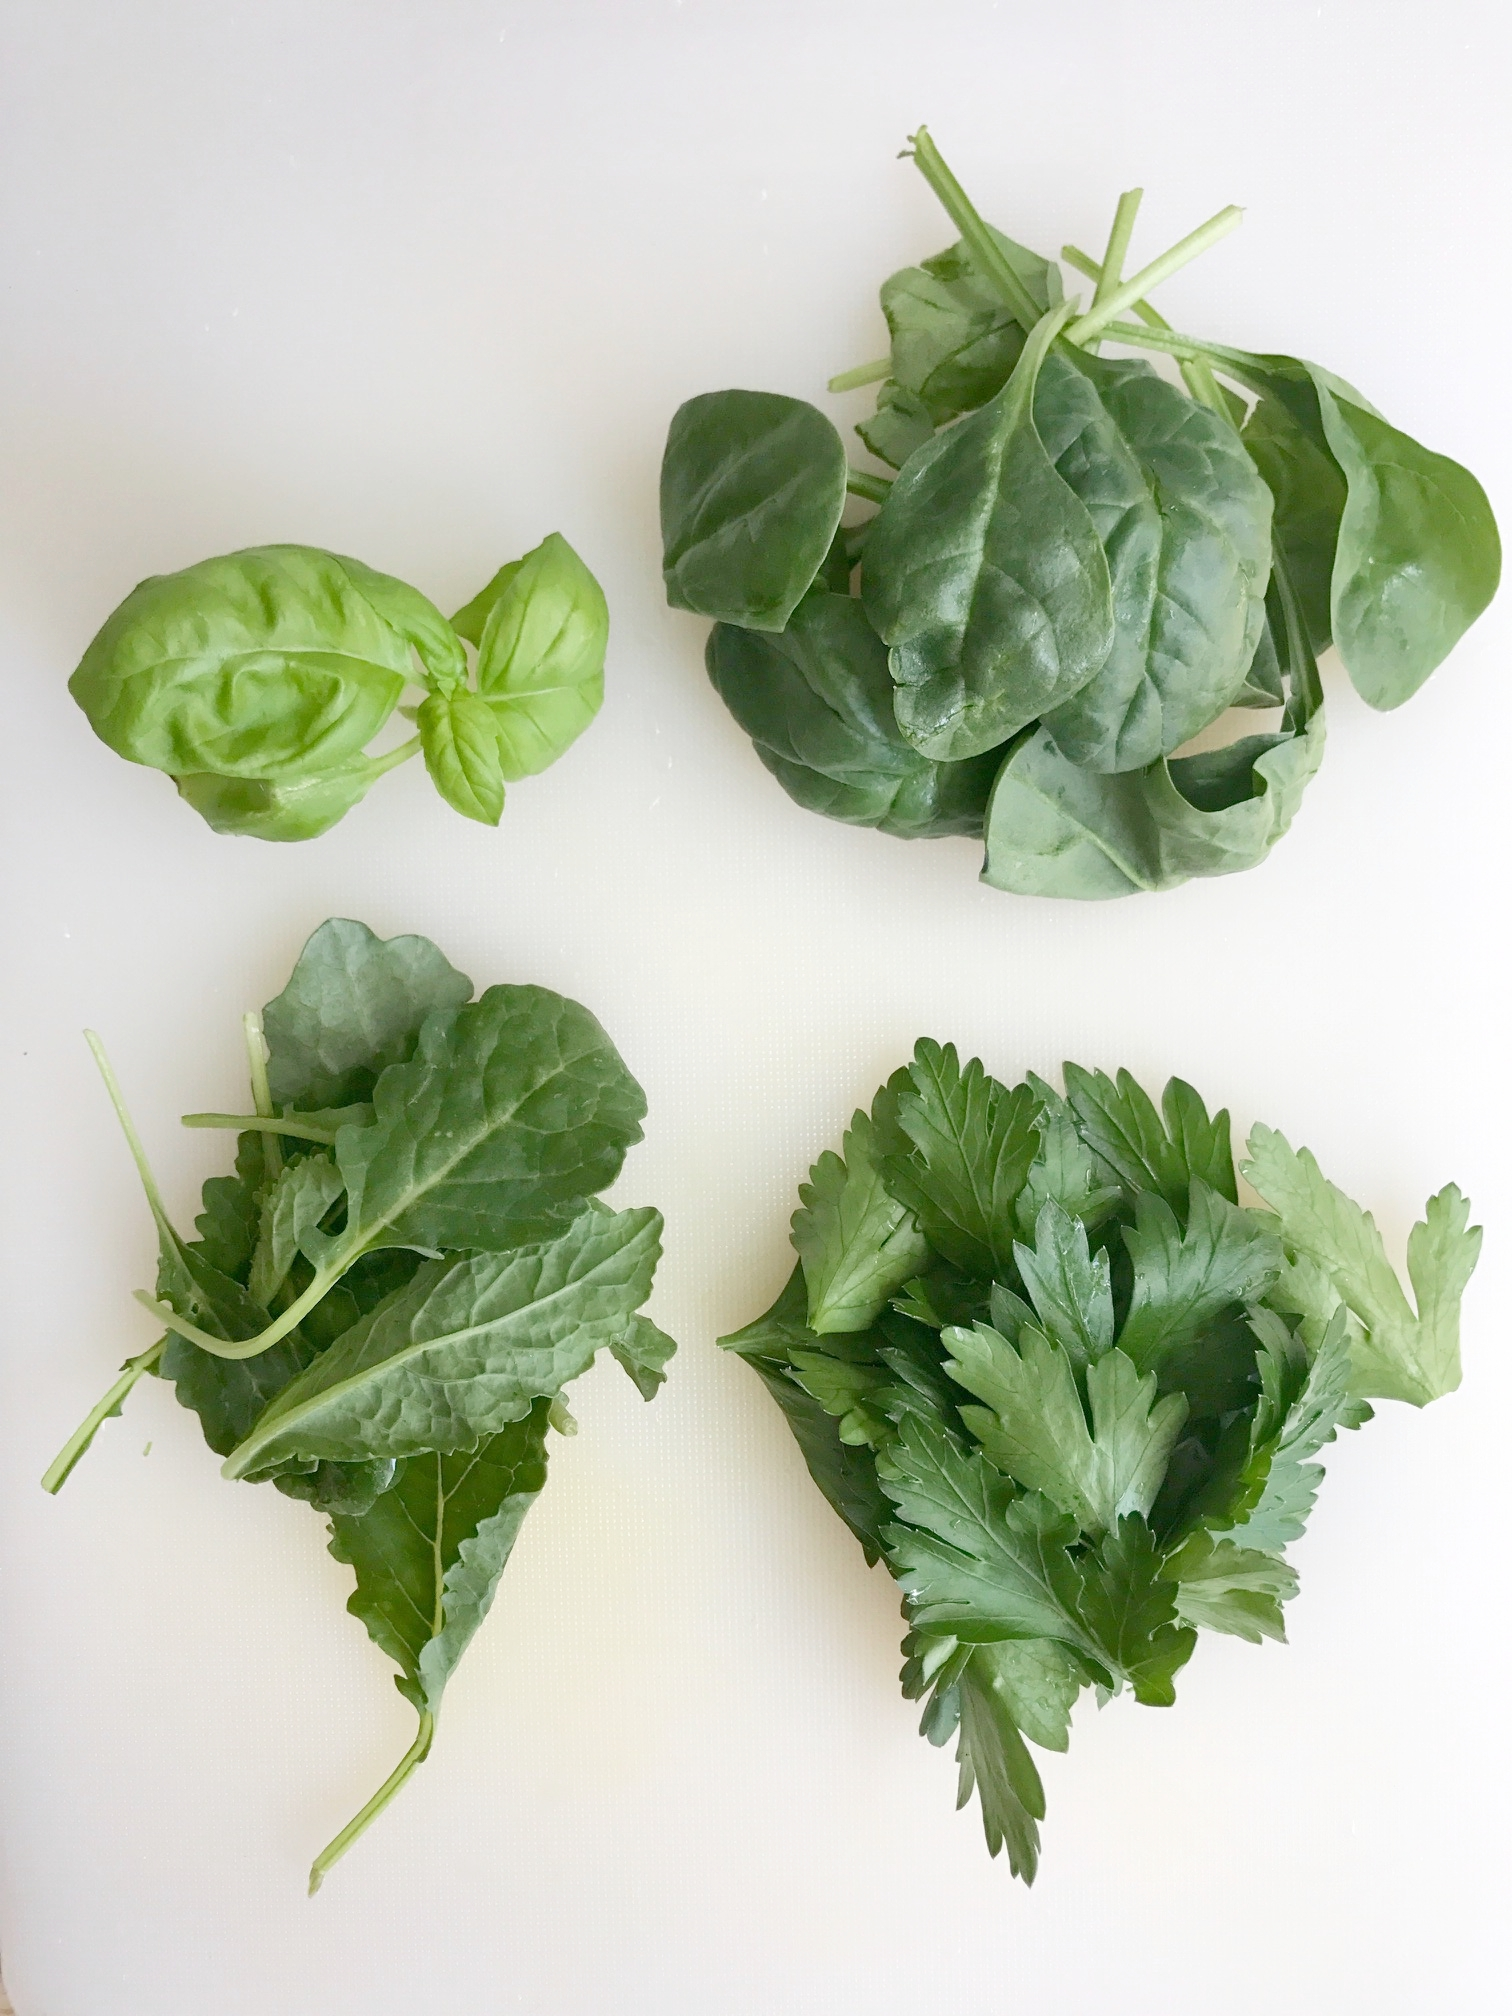 Clockwise from top left: basil, spinach, Italian flat leaf parsley, baby kale